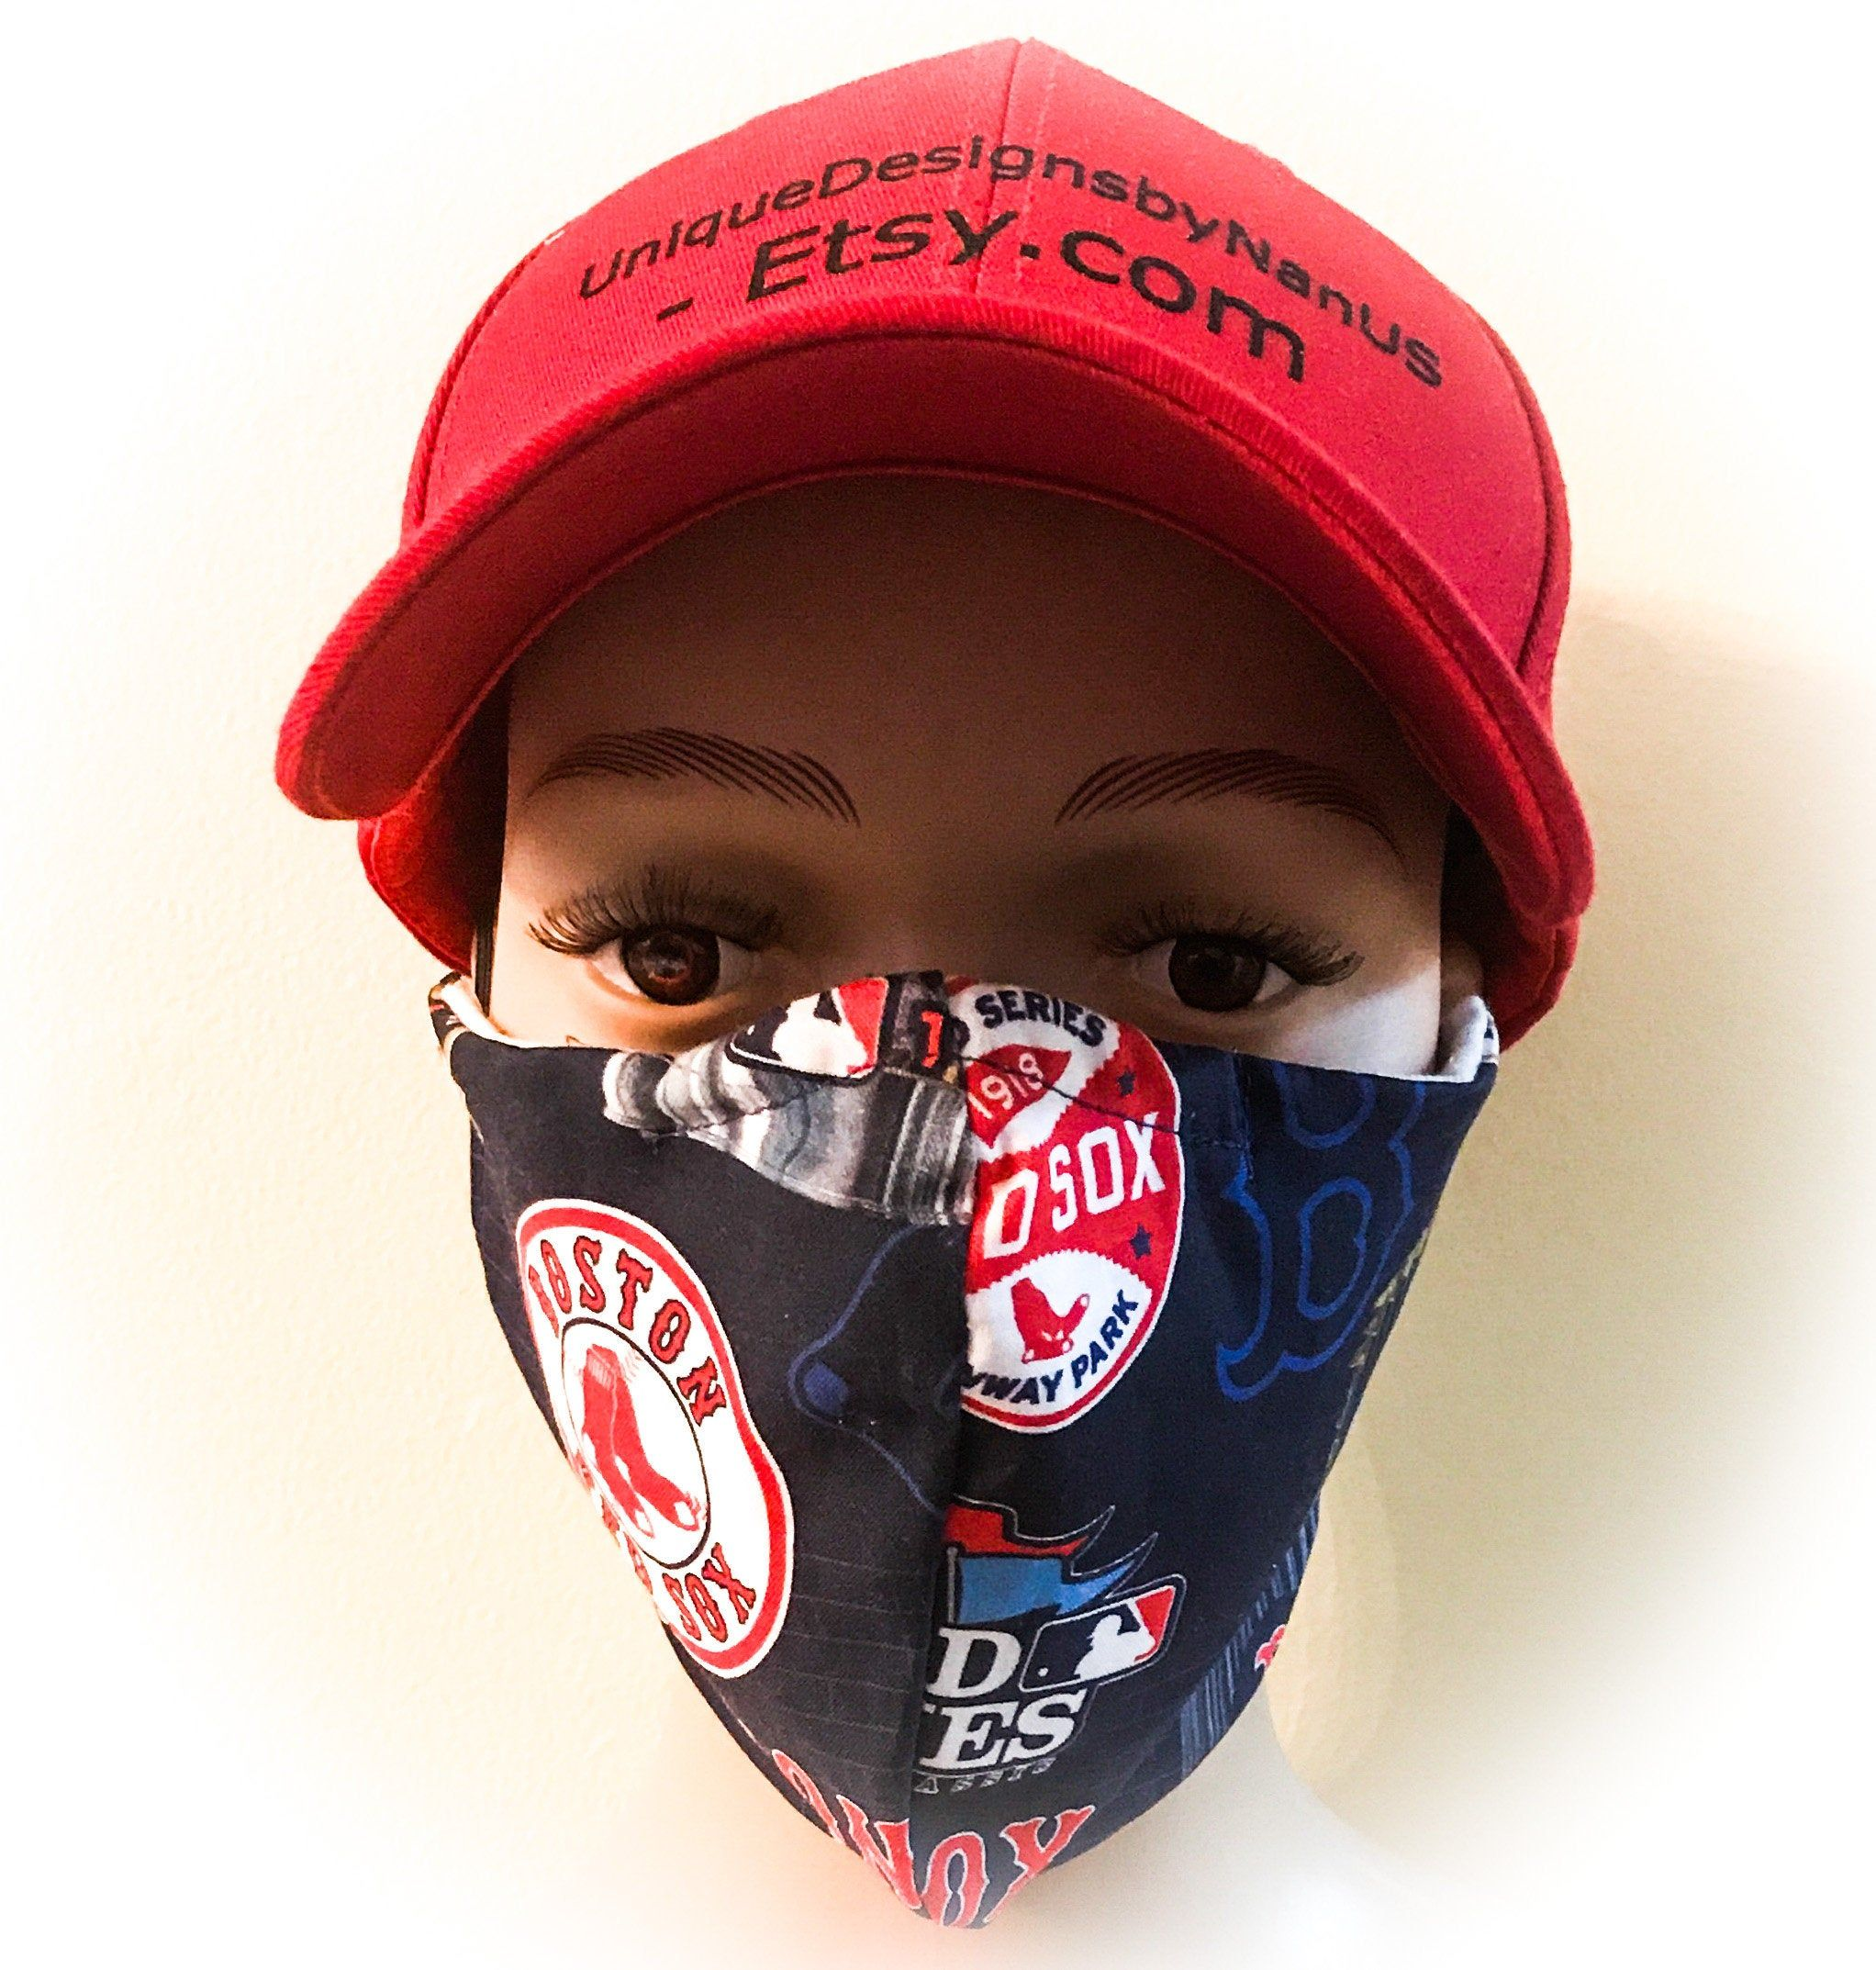 Yankees Mask Boston Redsox Mask Phillies Mask Baseball Mask St Etsy In 2020 St Louis Cardinals Yankees Phillies